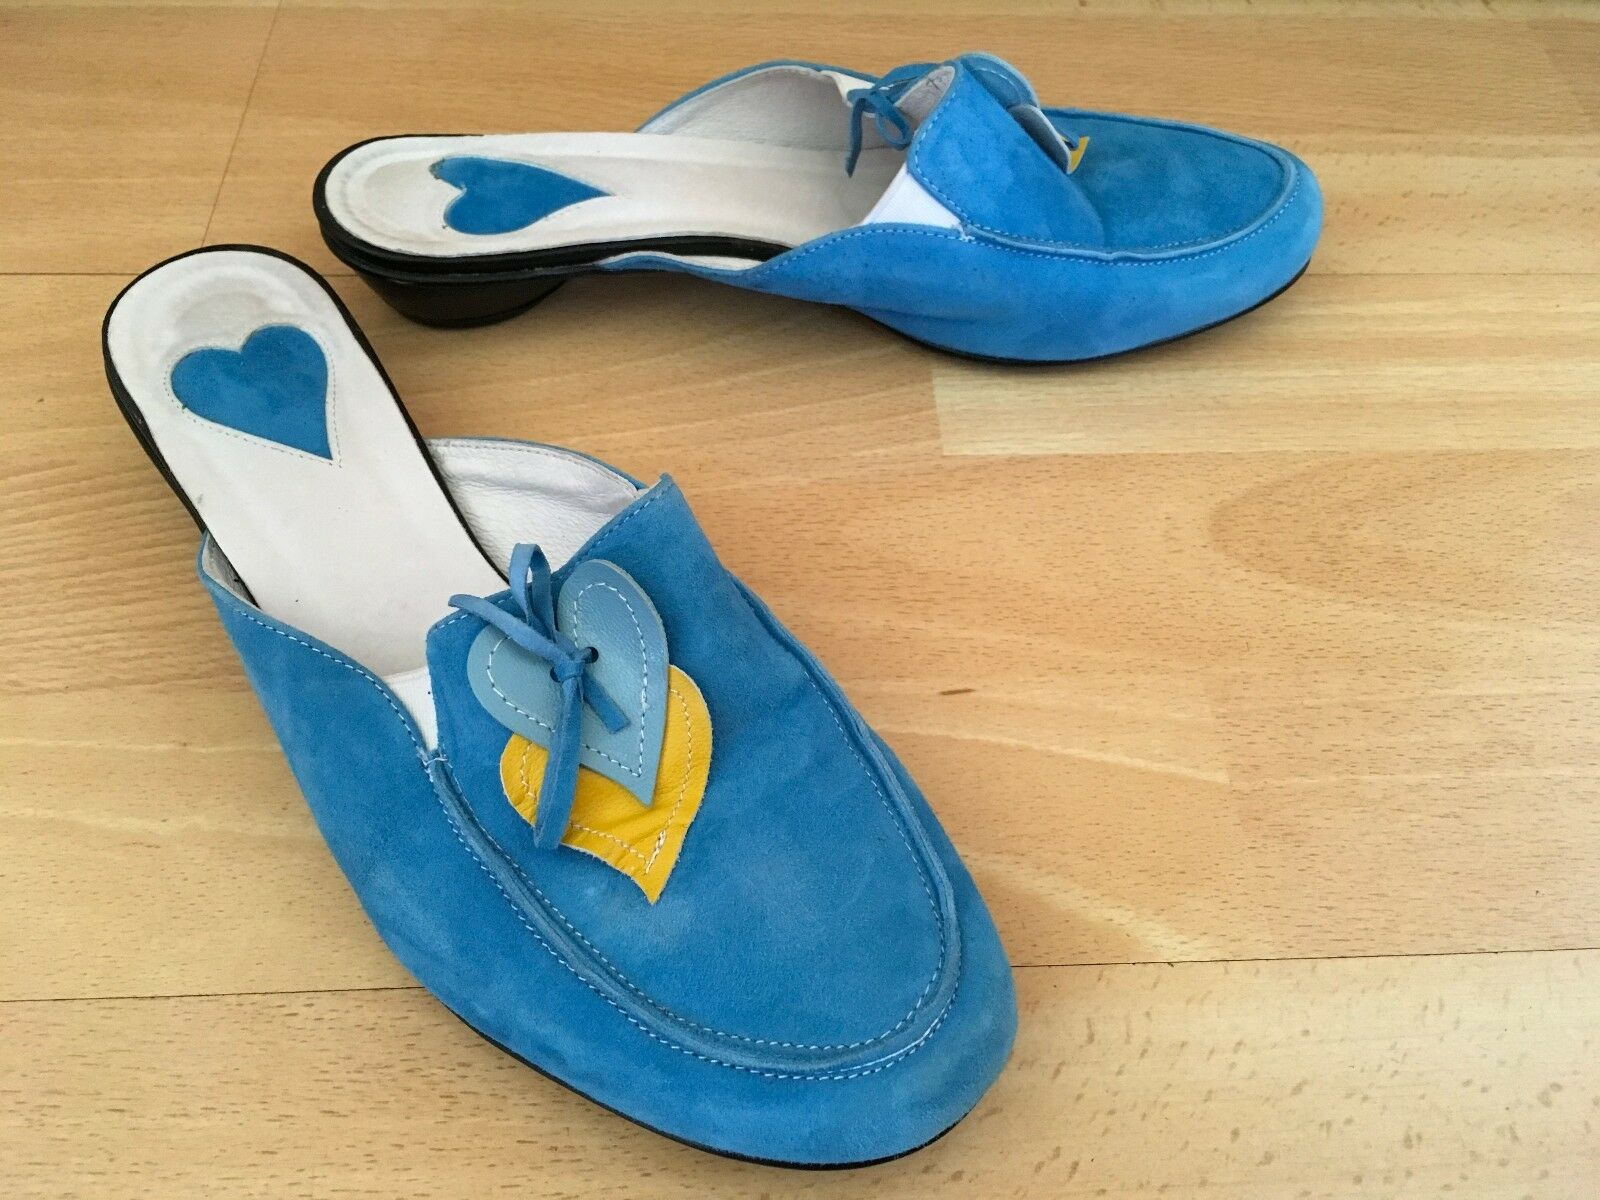 Baldowski Quirky Turquoise Leather Suede Mules Sandals Shoes Size EU 38 UK 5